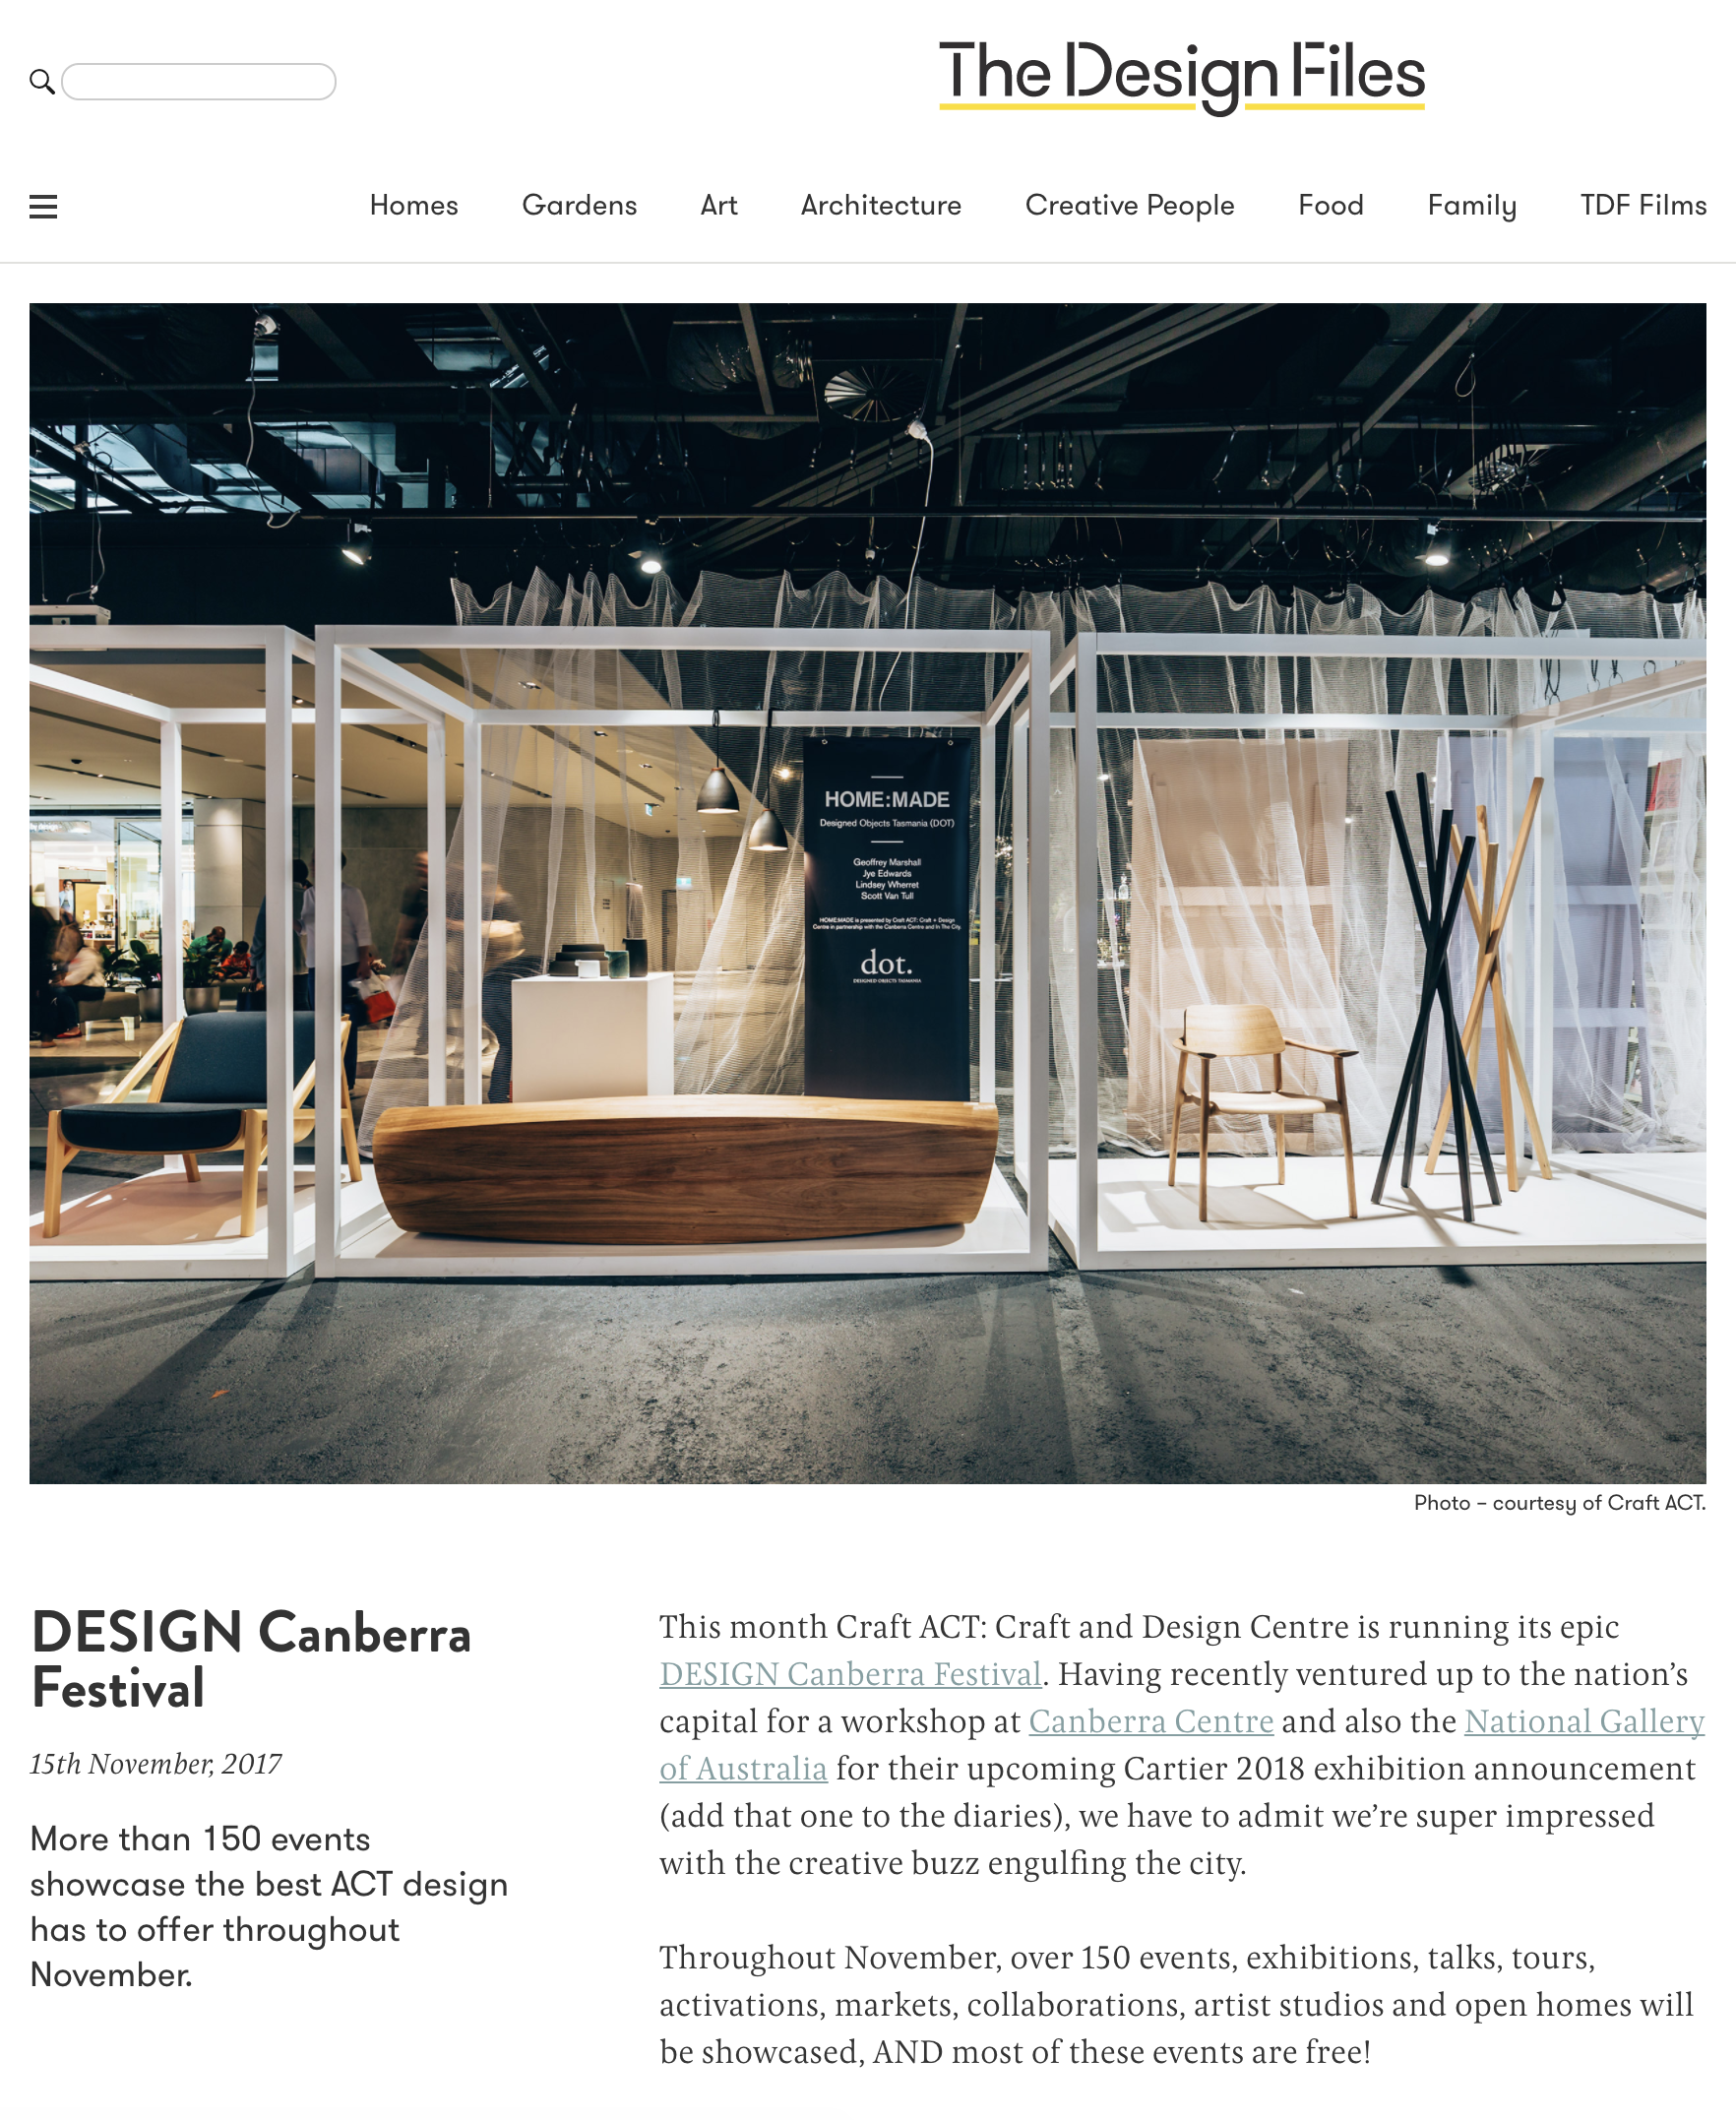 DESIGN Canberra - DESIGNFILES - 15 November, 2017 - DC OVERVIEW2.png